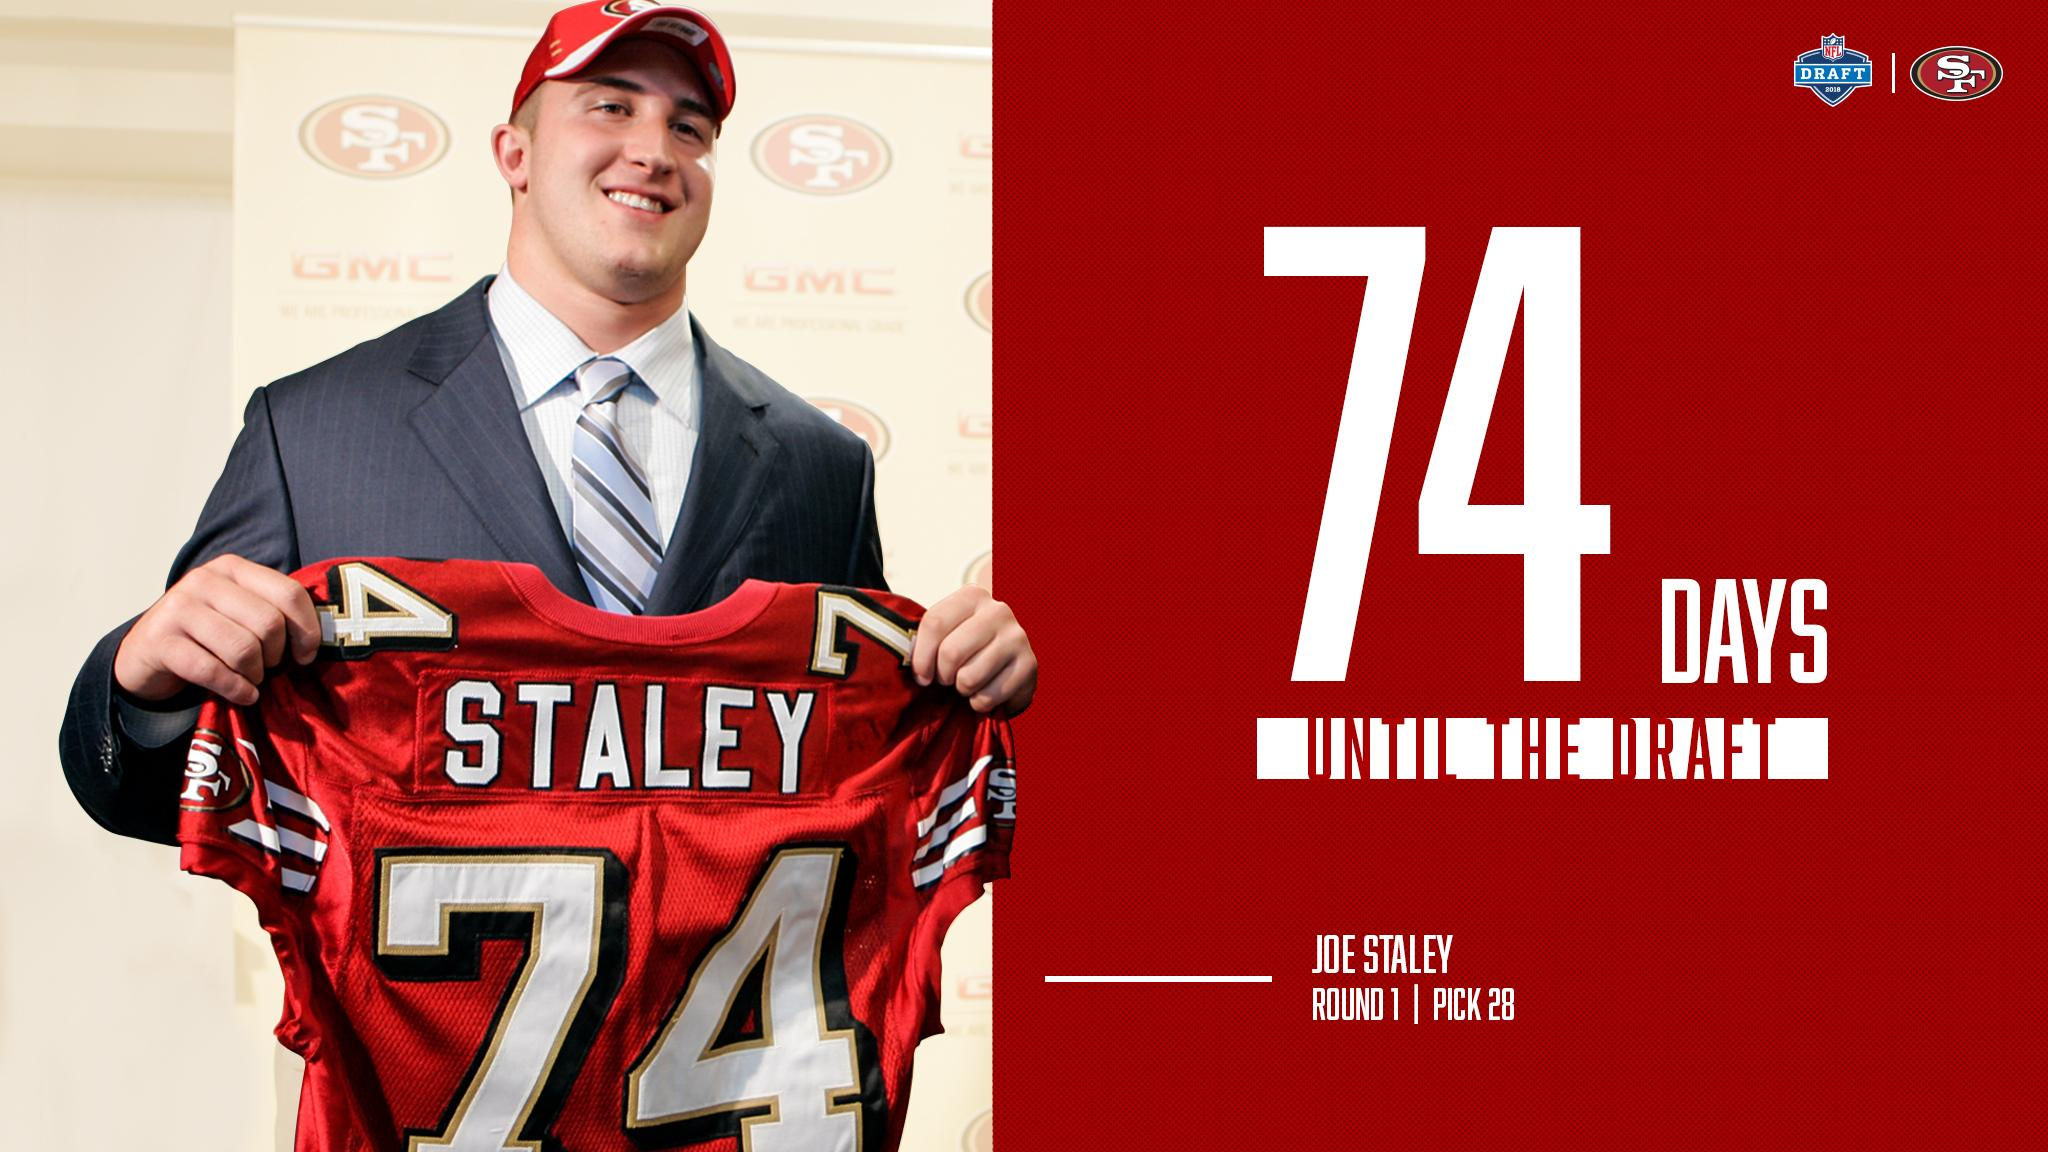 April 28th, 2007 - @jstaley74 became a member of the #49ers family.   74 days 'til the 2018 #NFLDraft! https://t.co/ZjyVm2cp1u